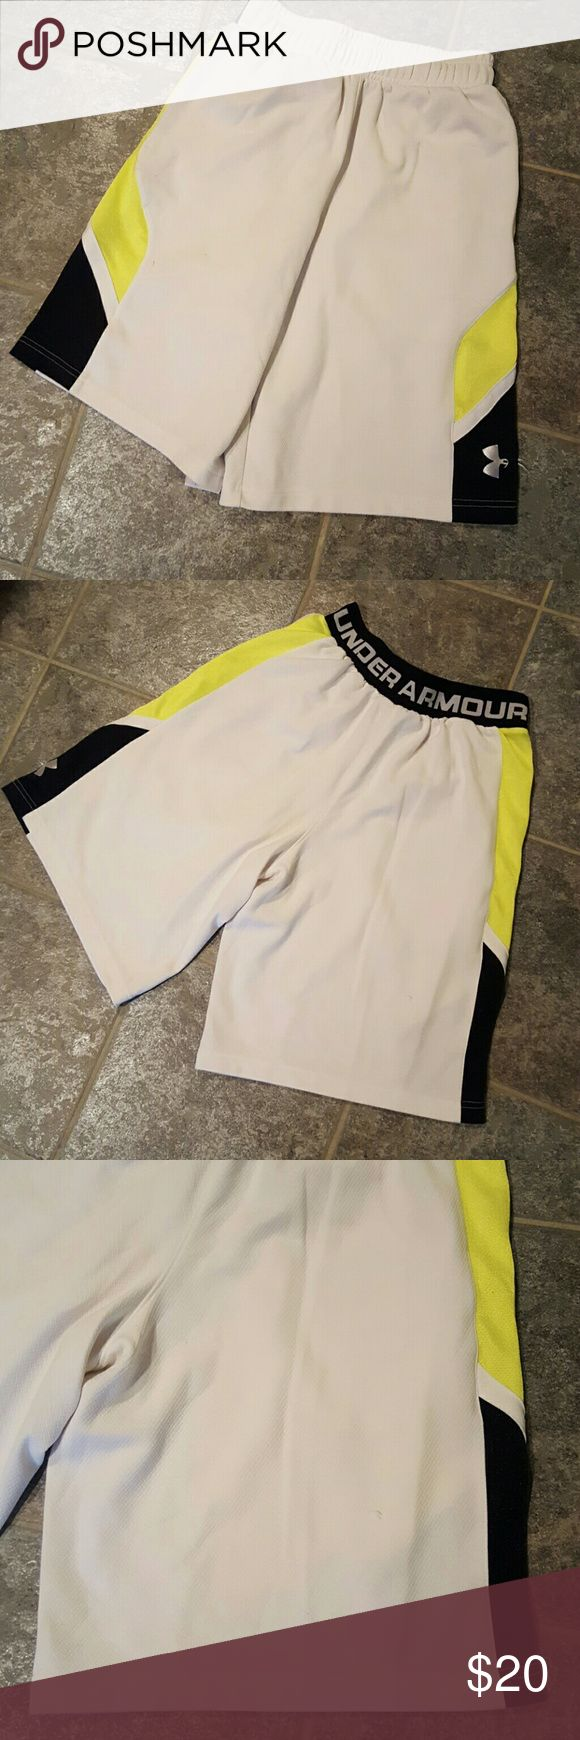 Under Armour shorts It has a couple snags on it but is still in good condition.  This is a guys small. Under Armour Shorts